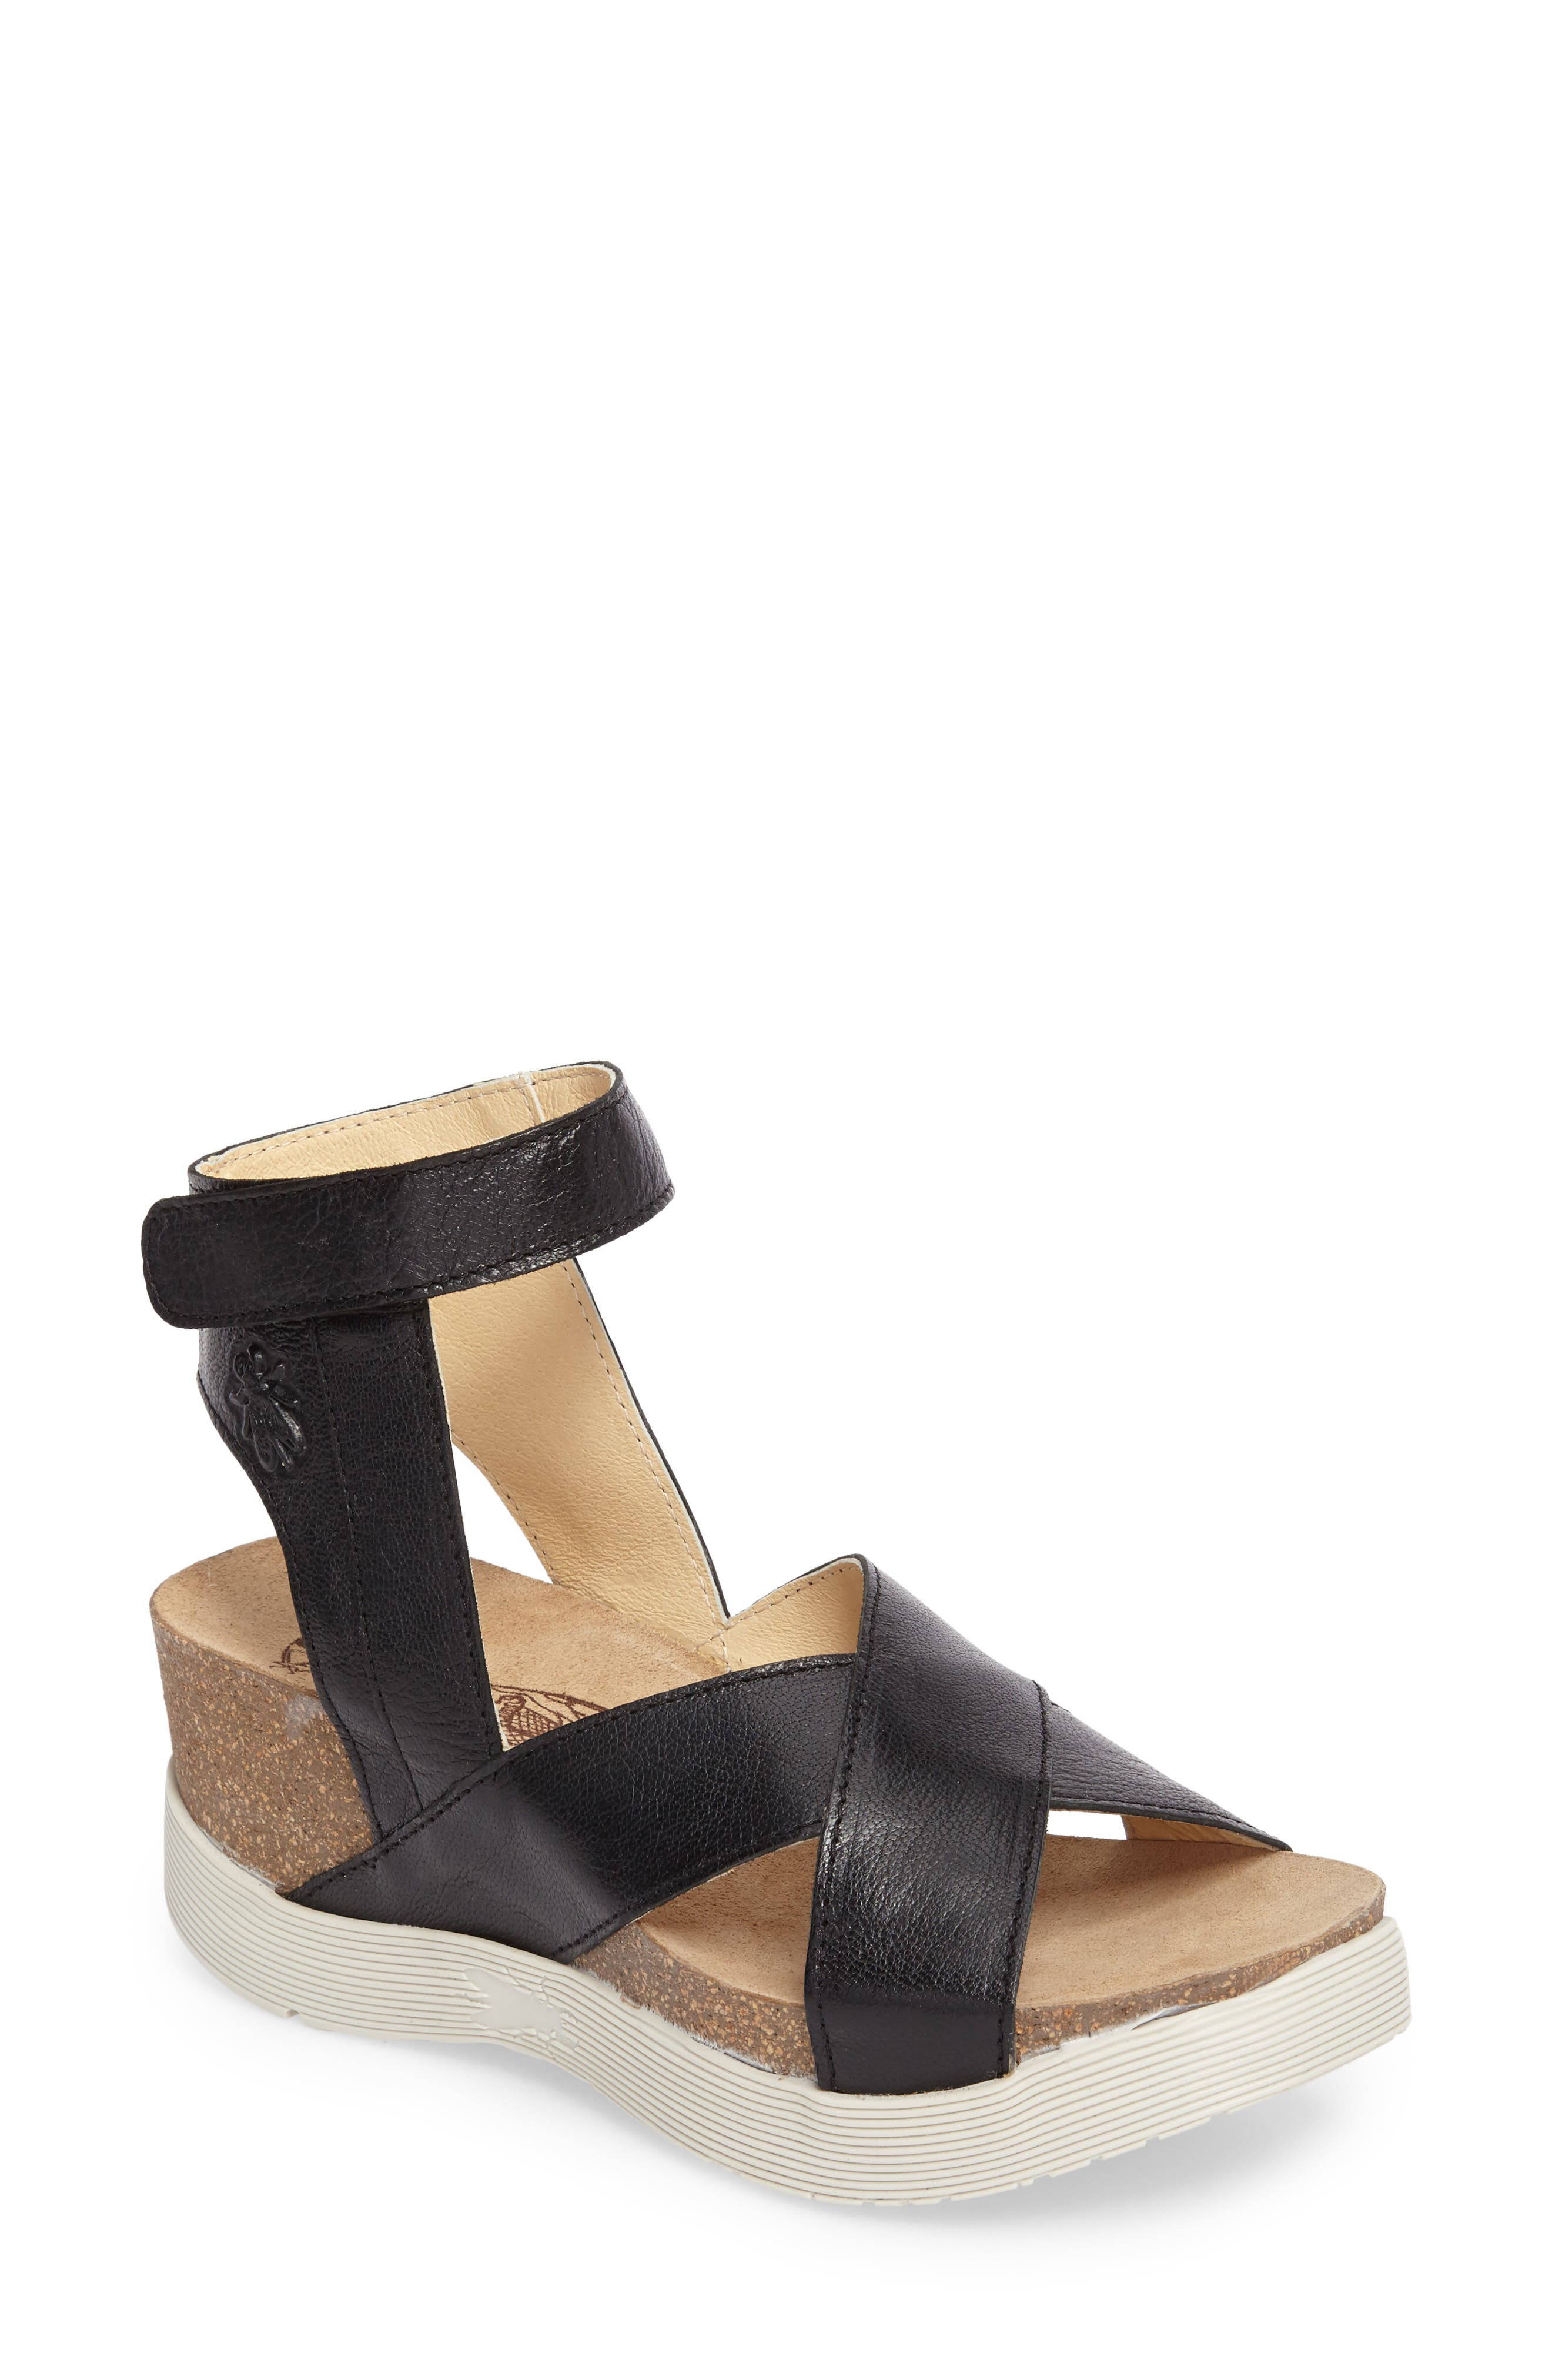 Weel Nubuck Leather Platform Sandal,                             Main thumbnail 1, color,                             BLACK MOUSSE LEATHER